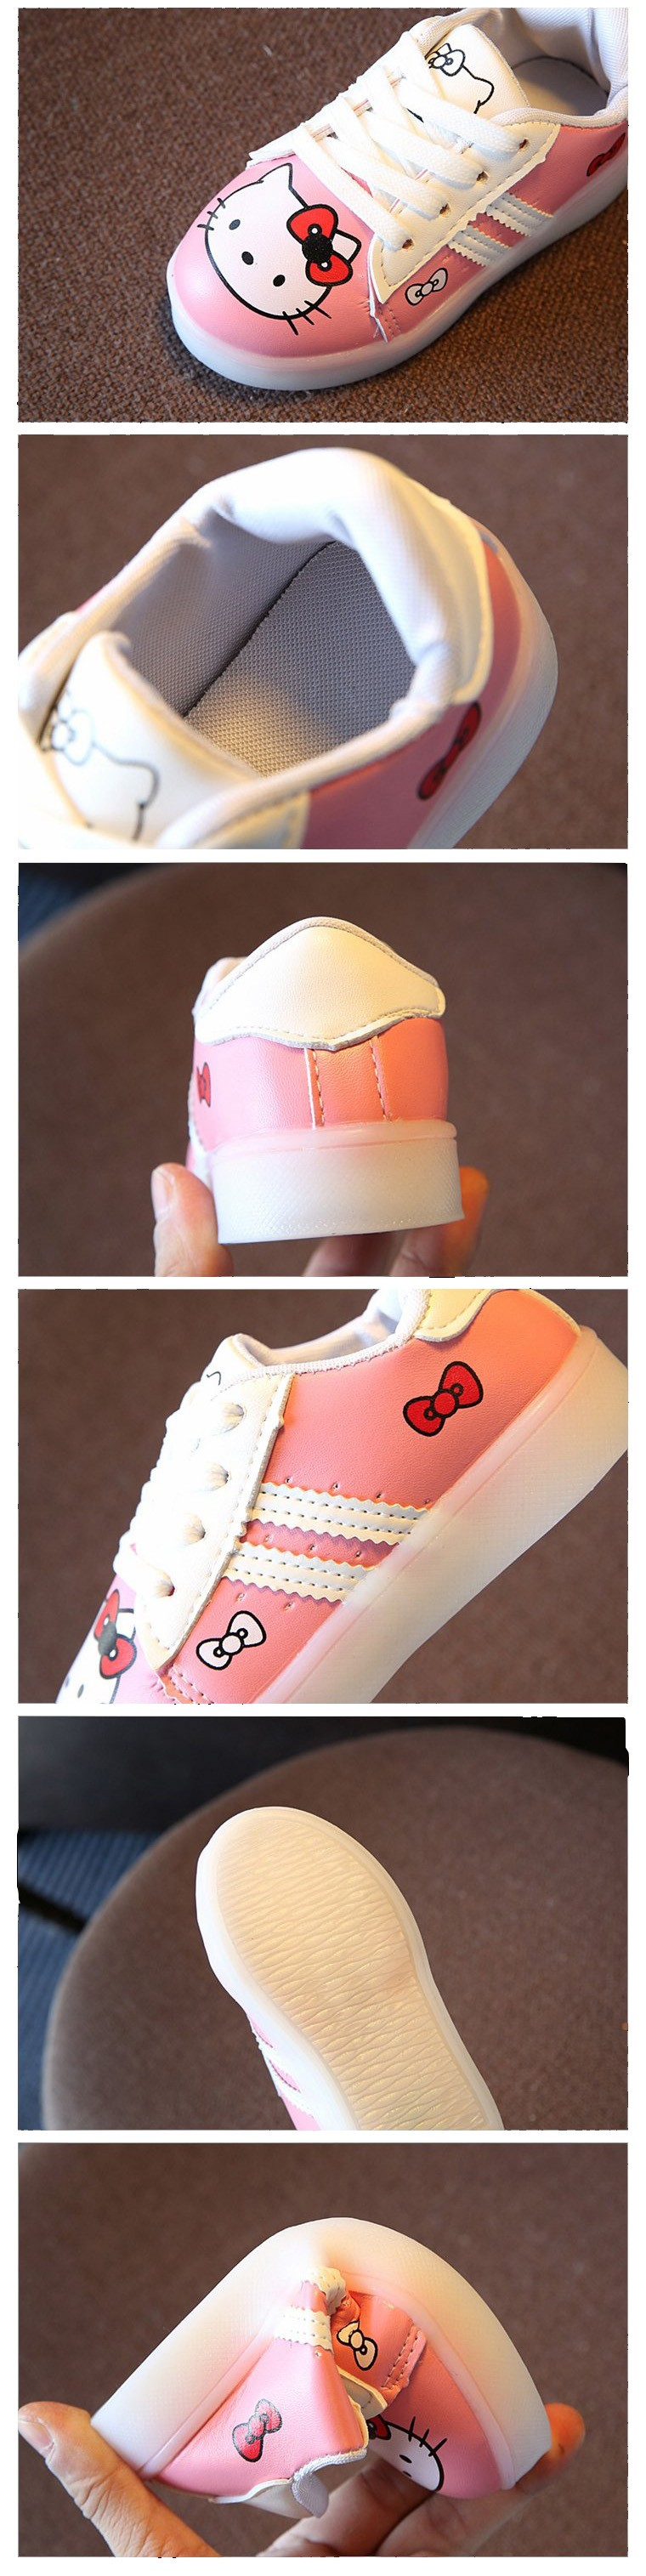 1bea0e926 ... causal baby girl LED lighted shoes cute hello kitty flash shoes for  1-6yrs girls ...